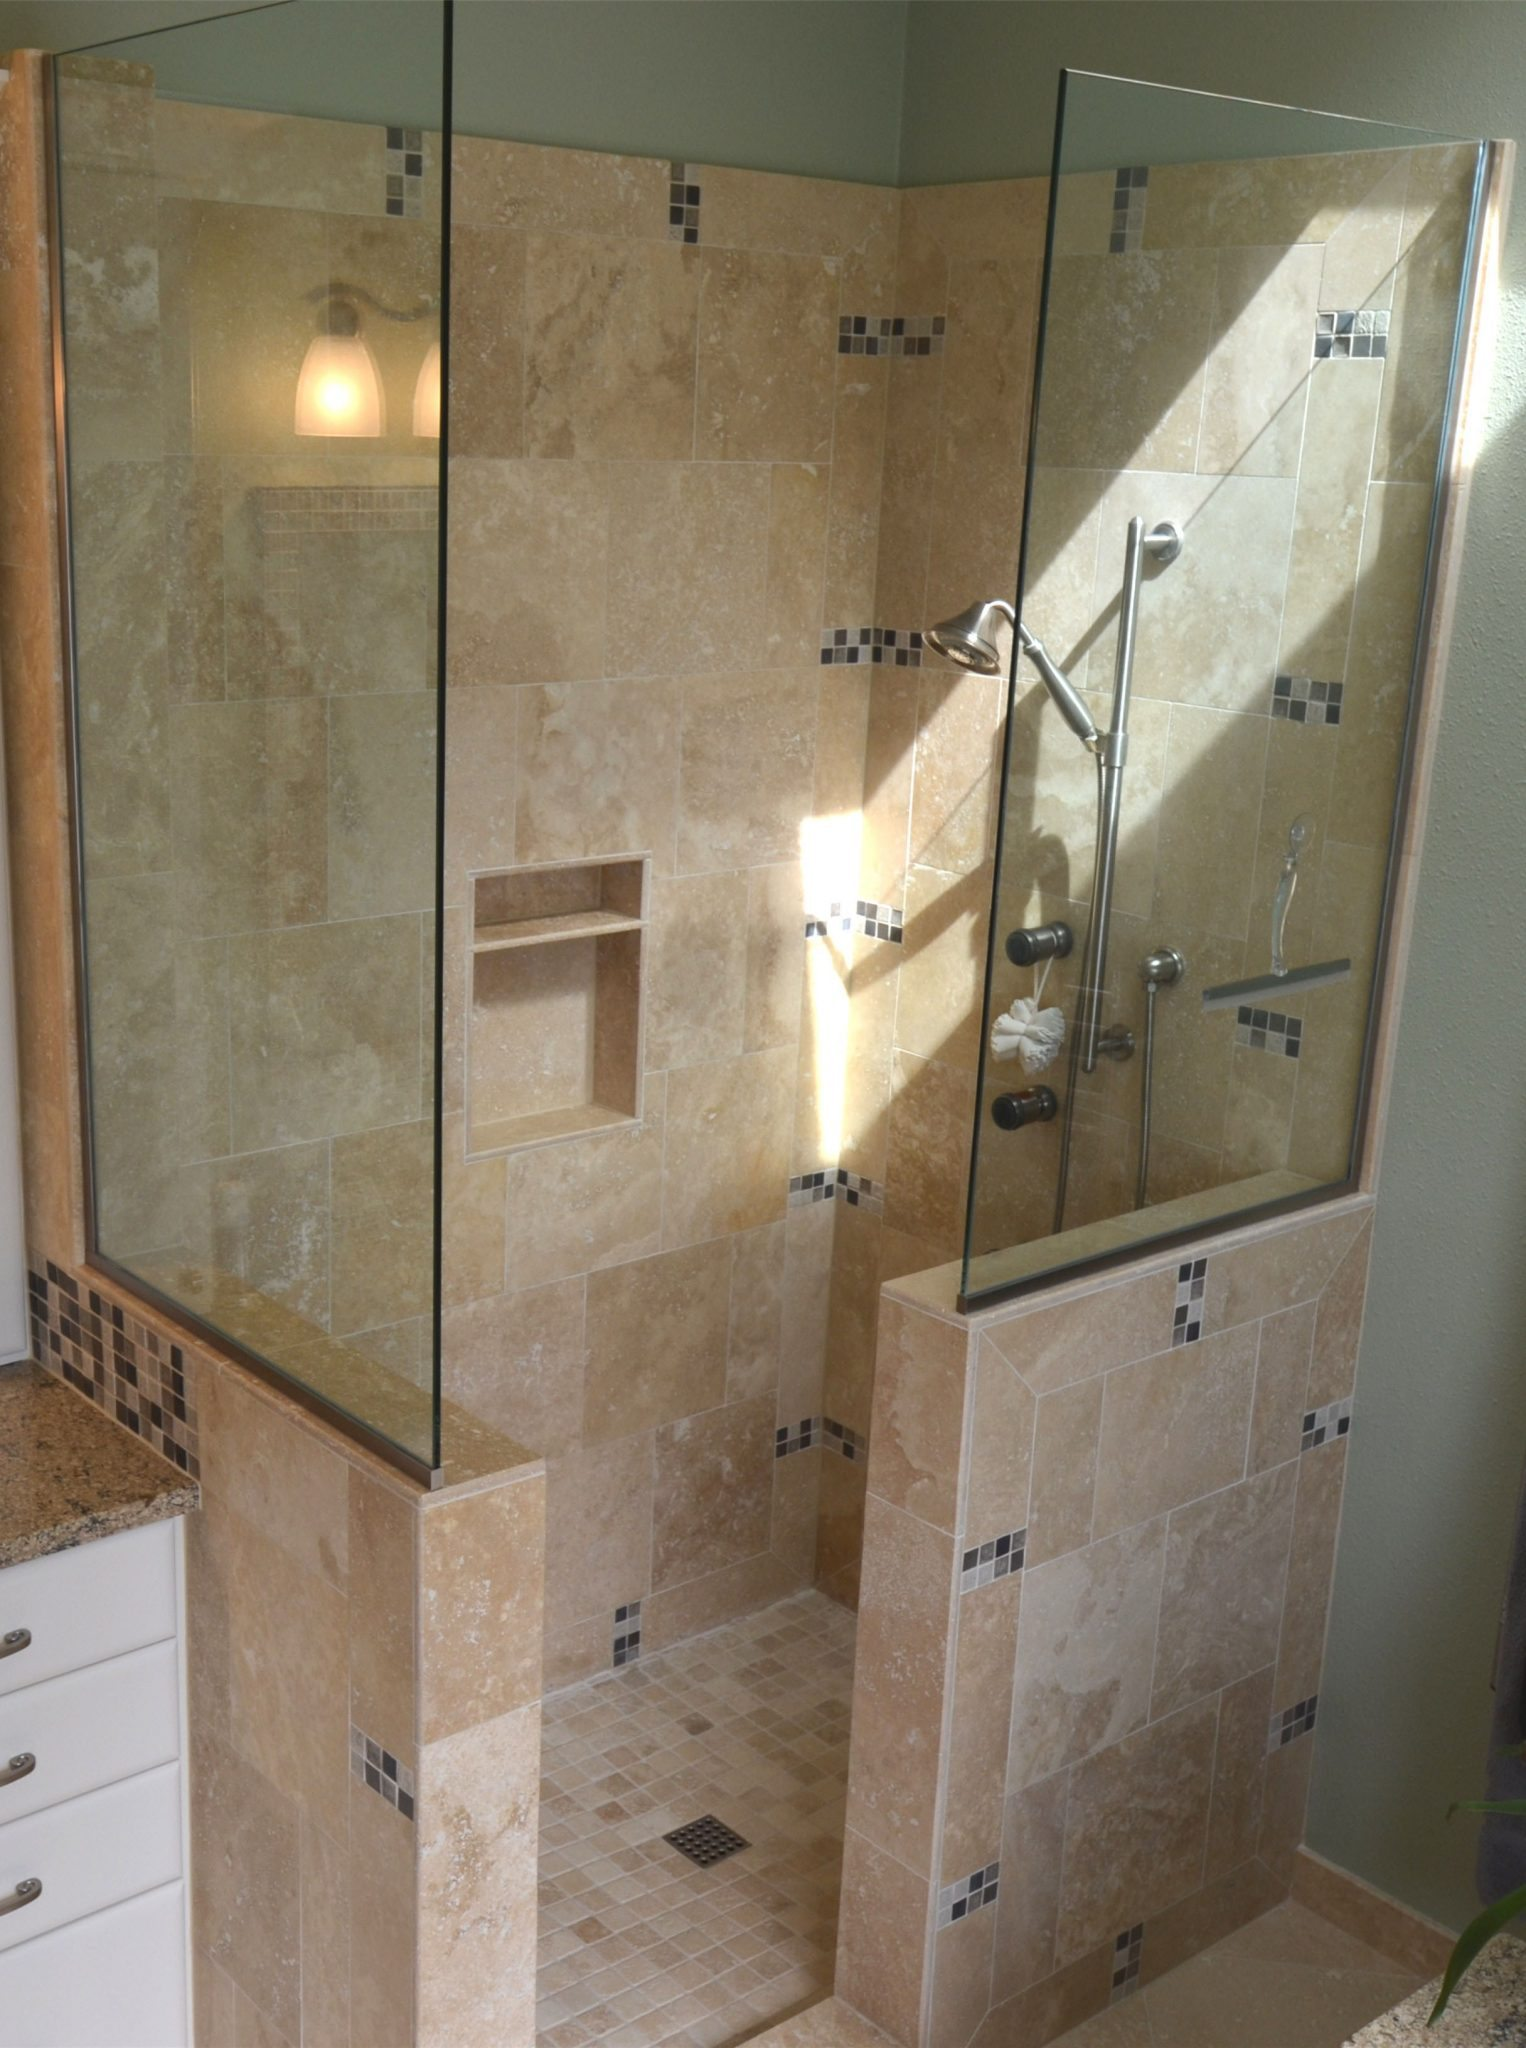 Doorless Tile Dale S Remodeling Salem Oregon Dale S Remodeling Salem Oregon